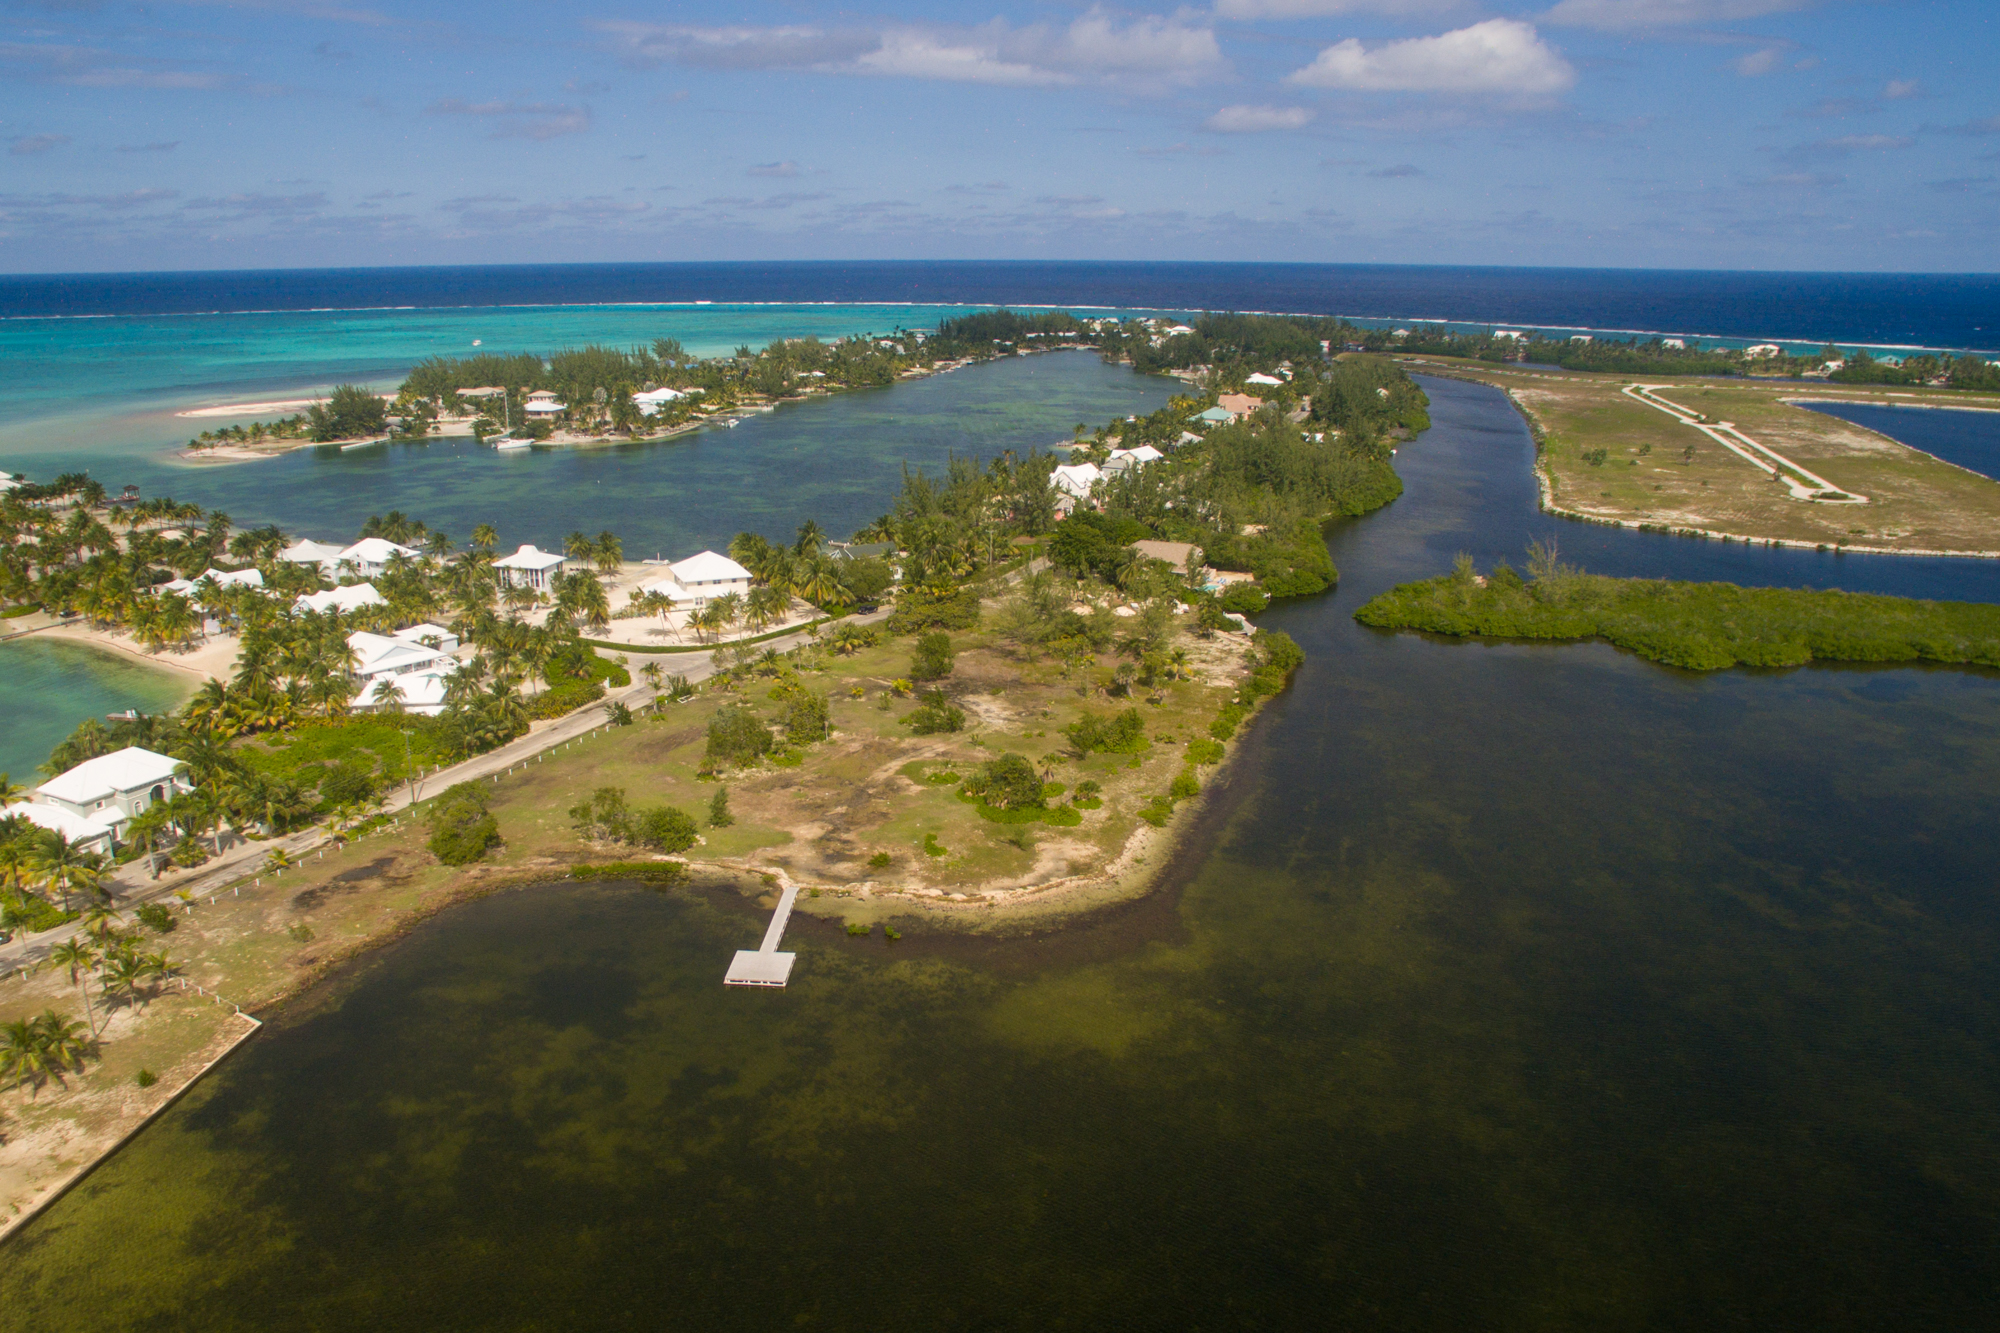 Land for Sale at Little Sound Acreage in Cayman Kai Rum Point, Cayman Islands